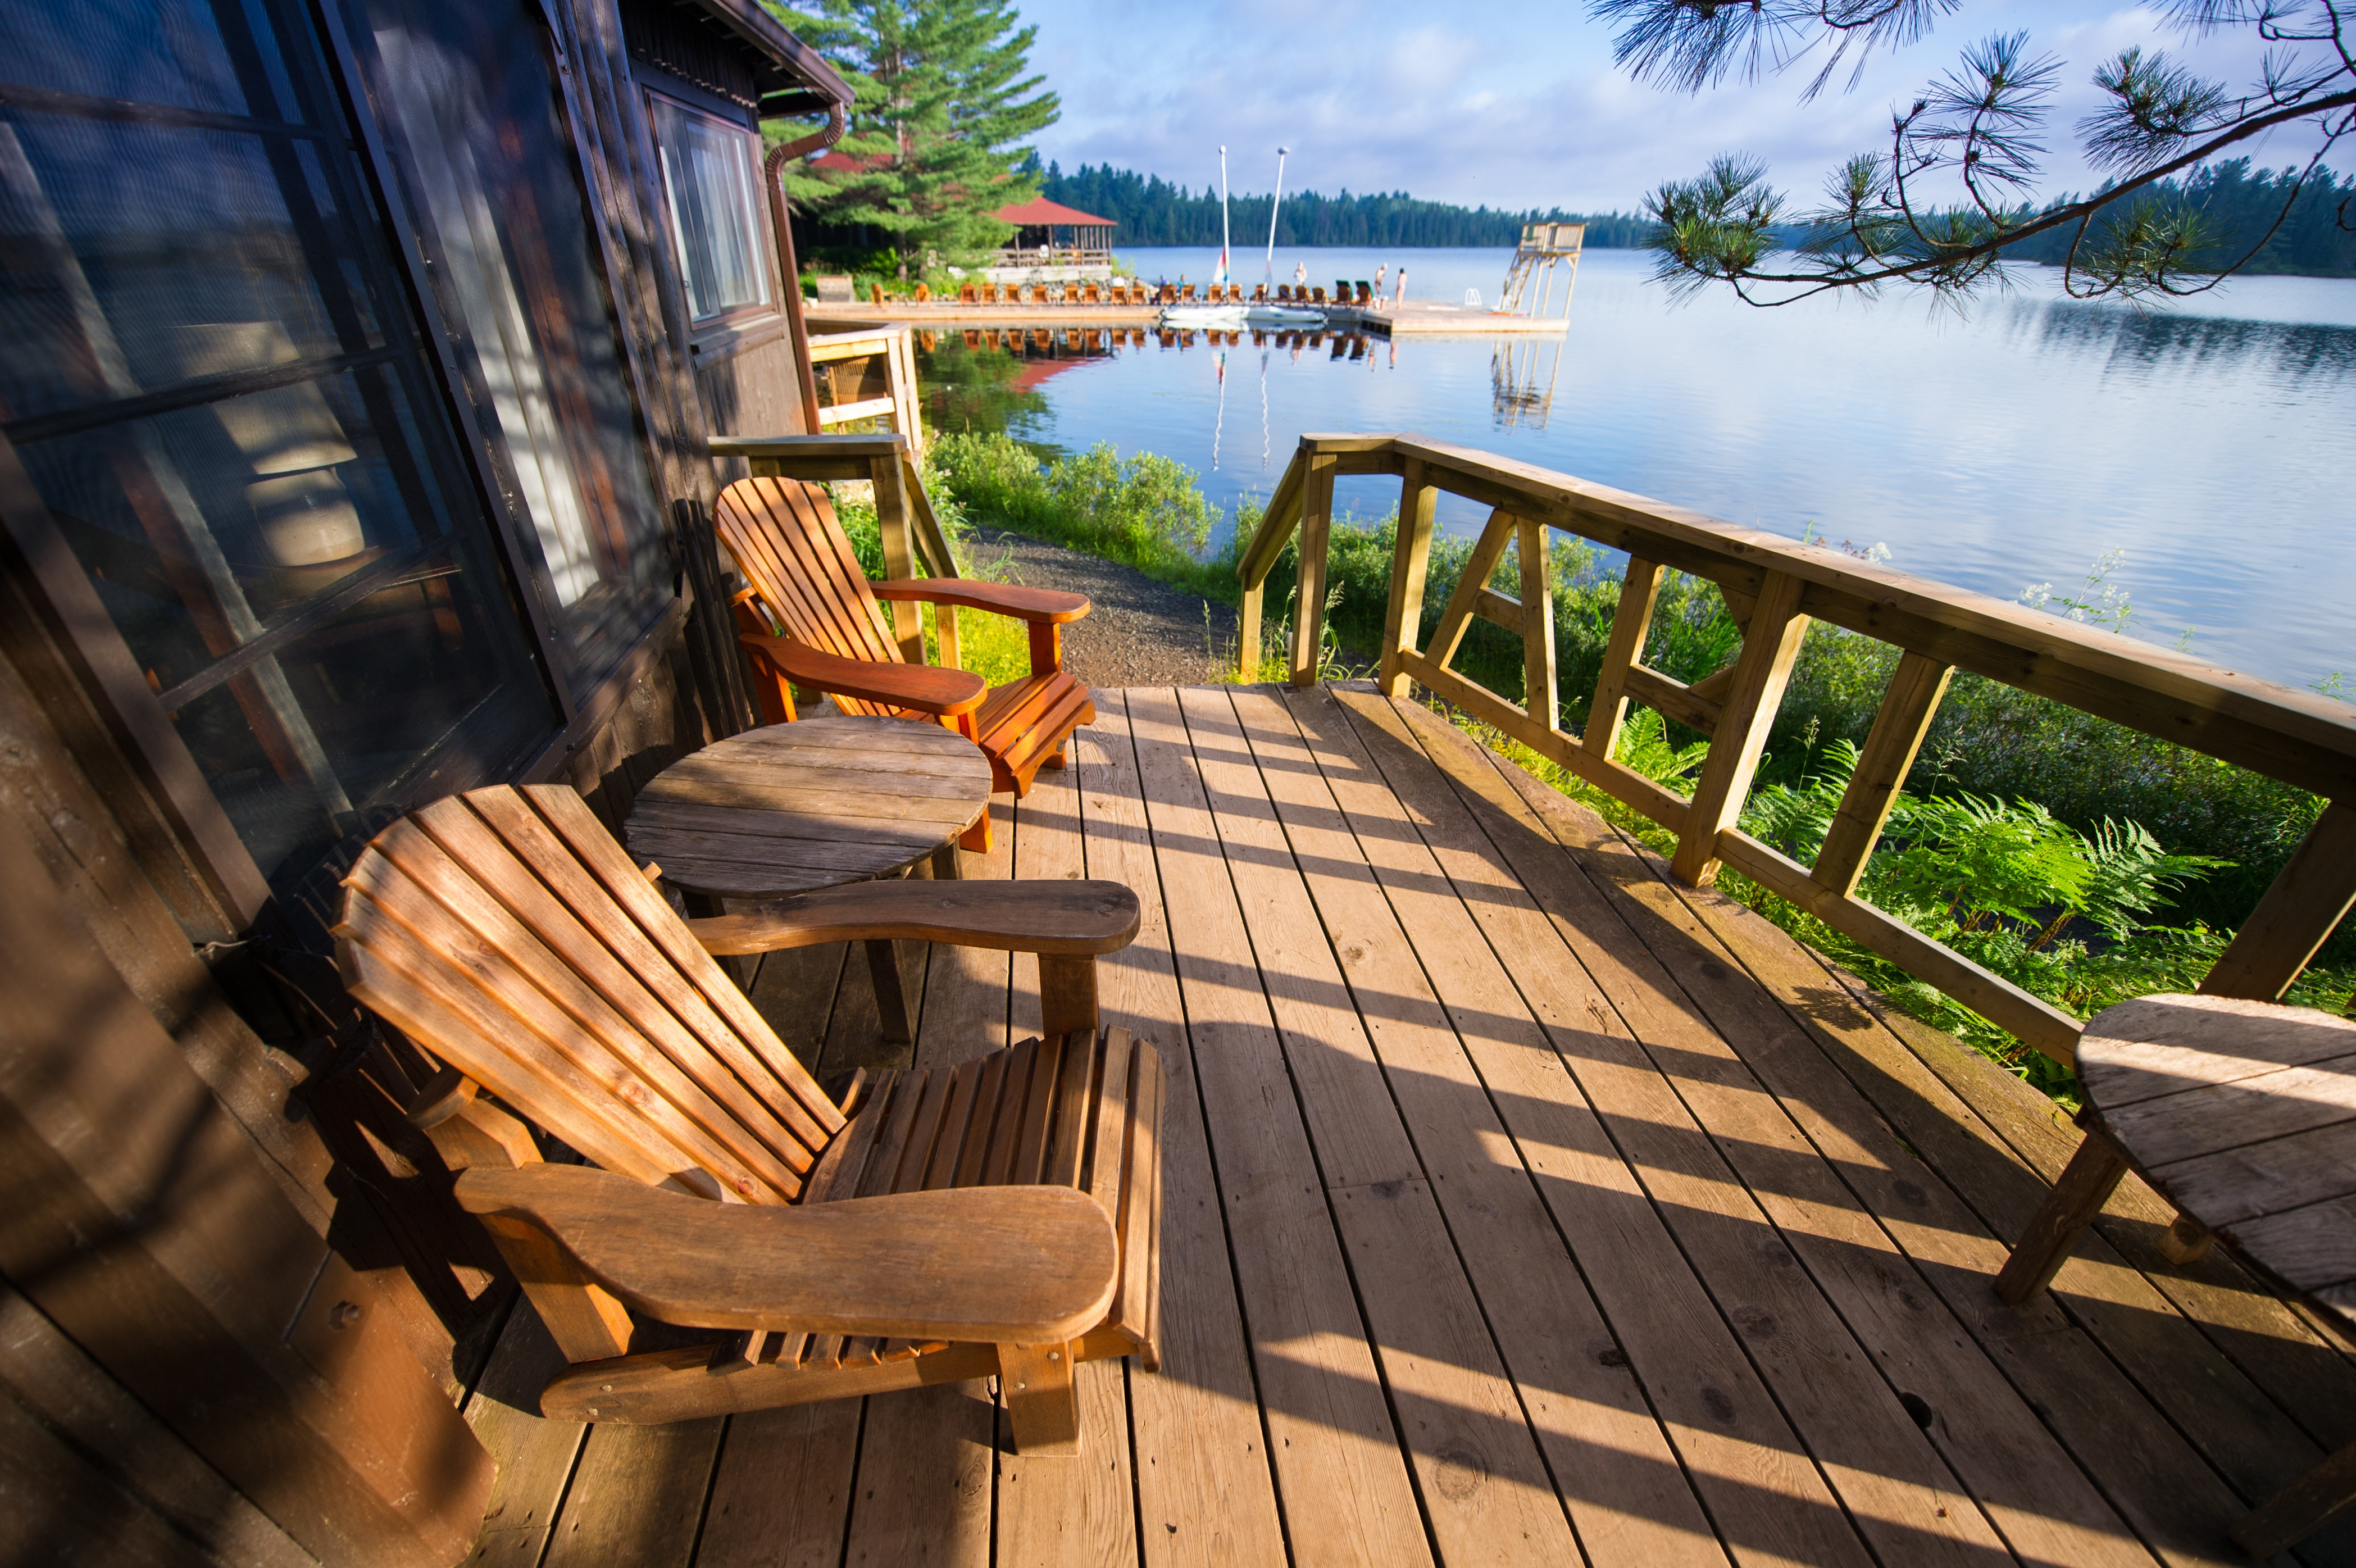 Dreaming of owning your own vacation home?